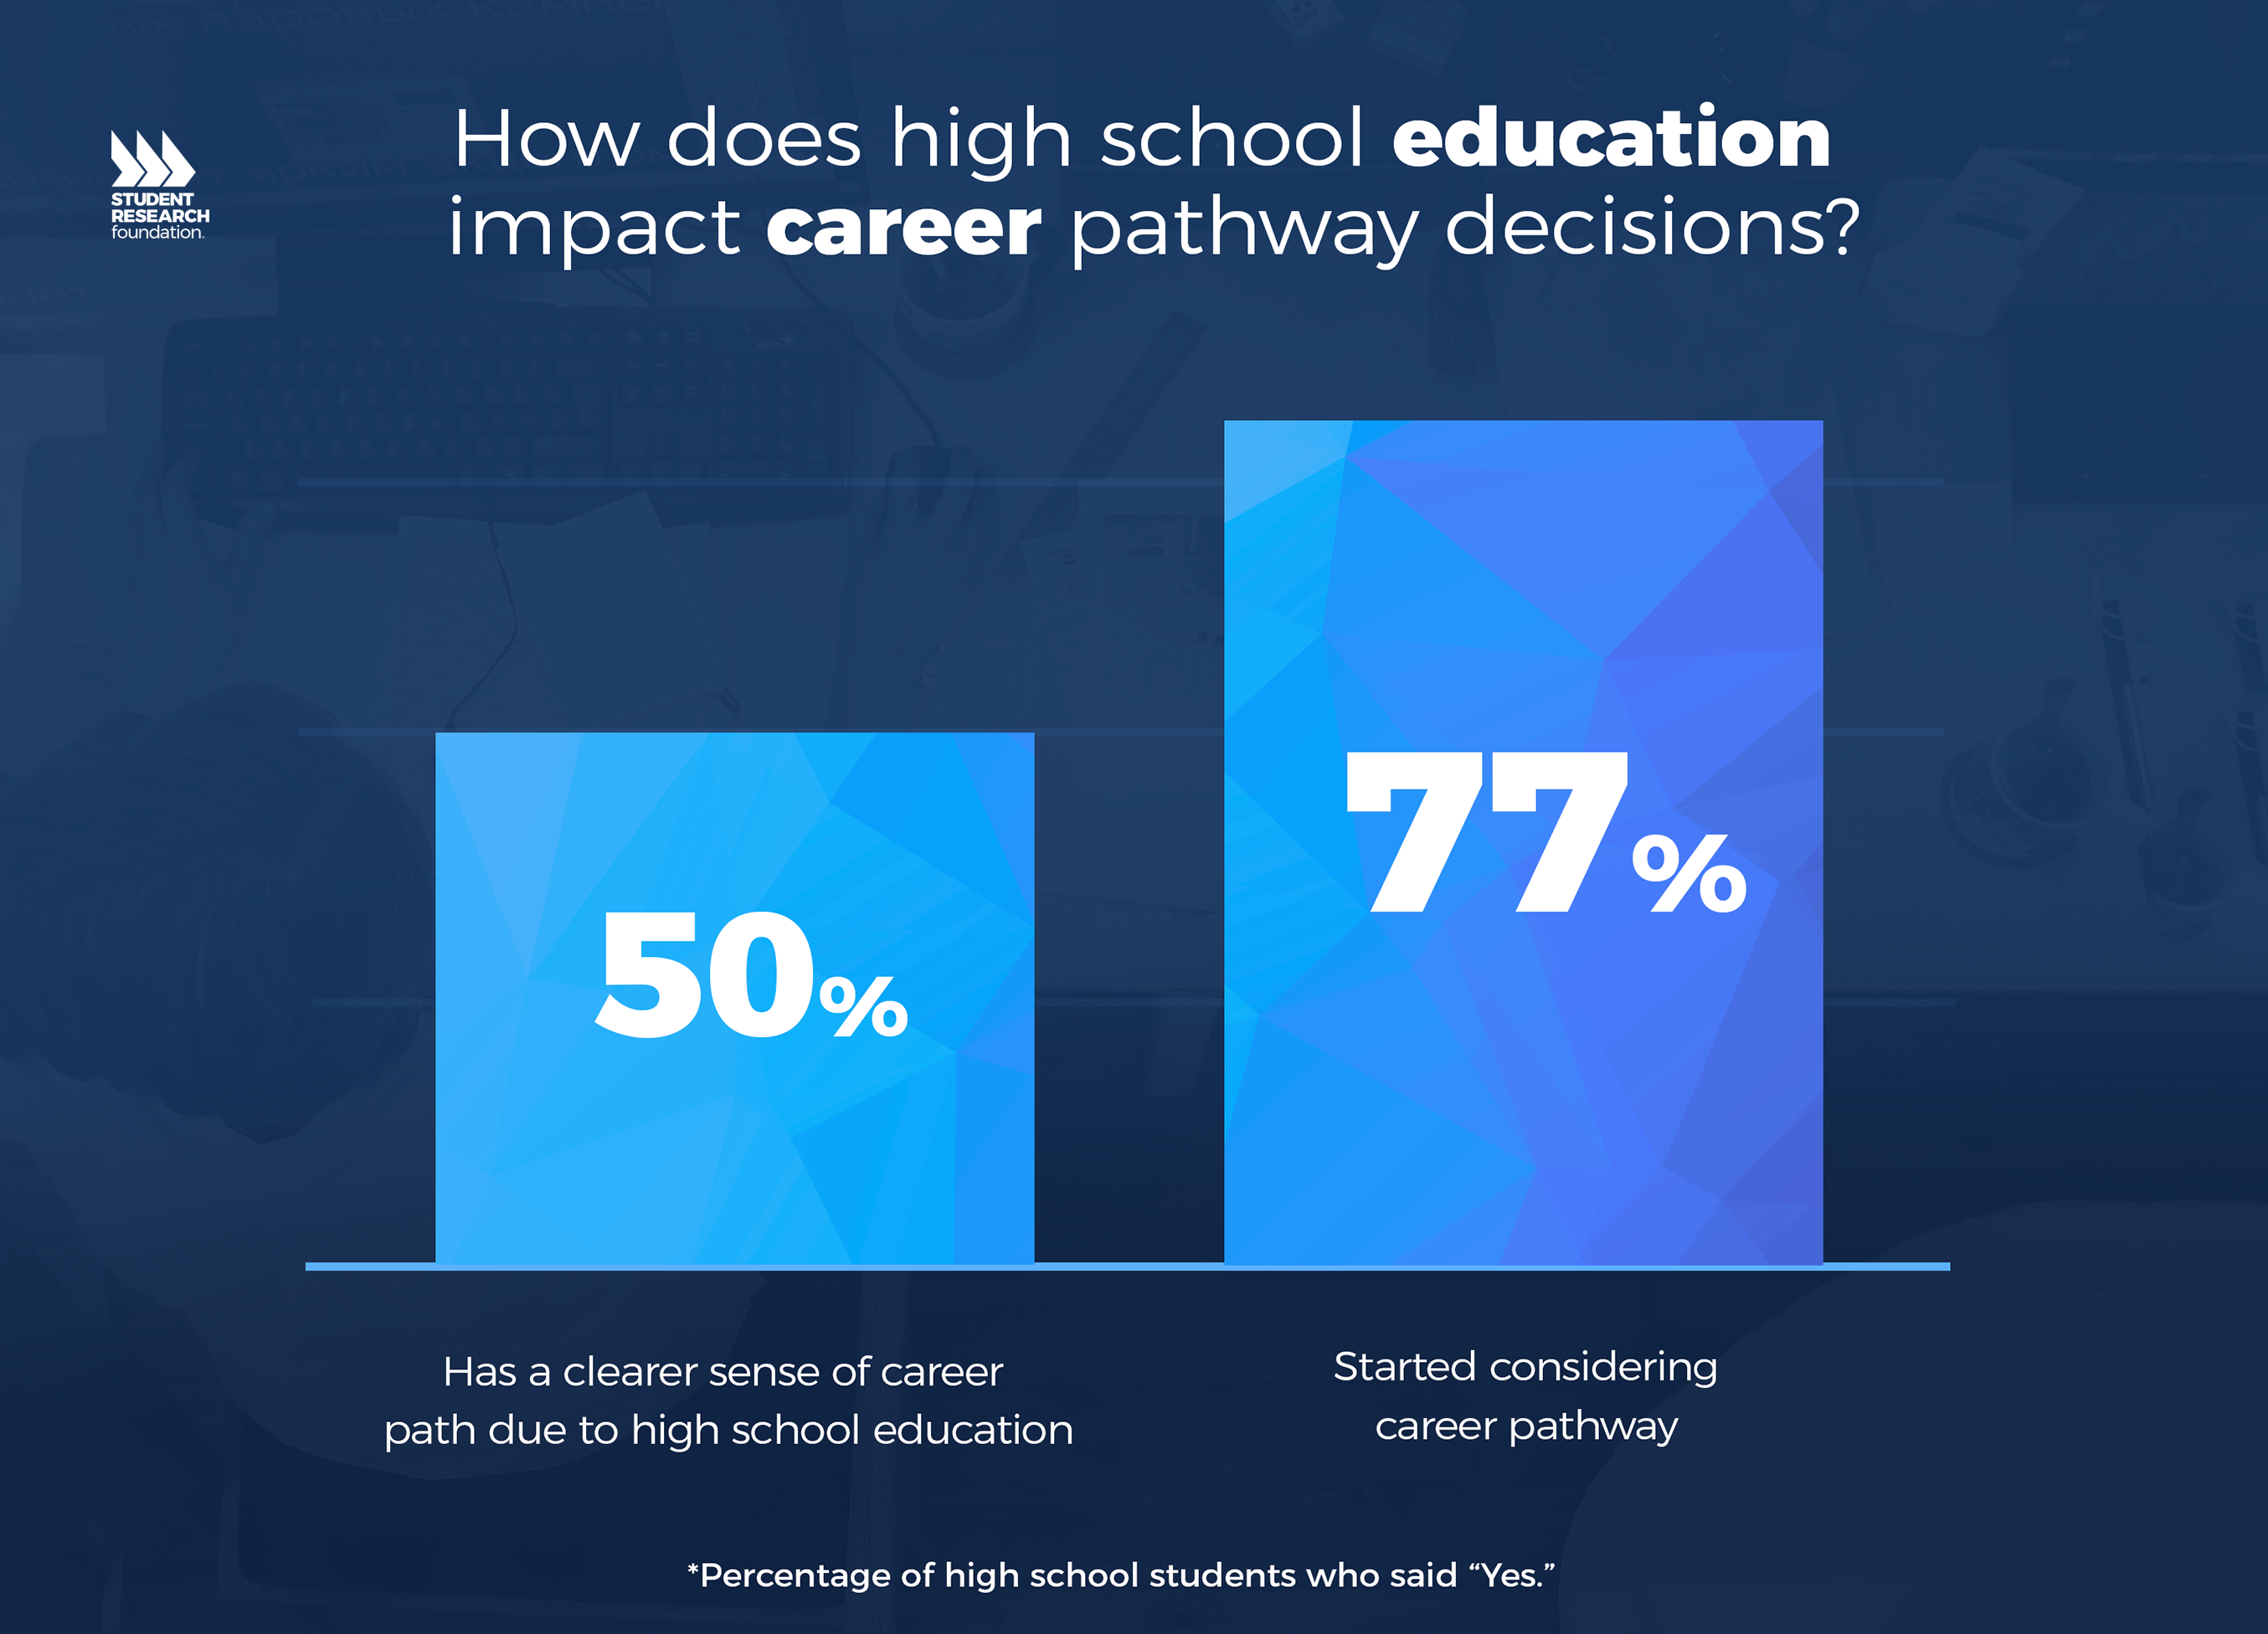 21st Century Skills and Career Pathways - Student Research Foundation